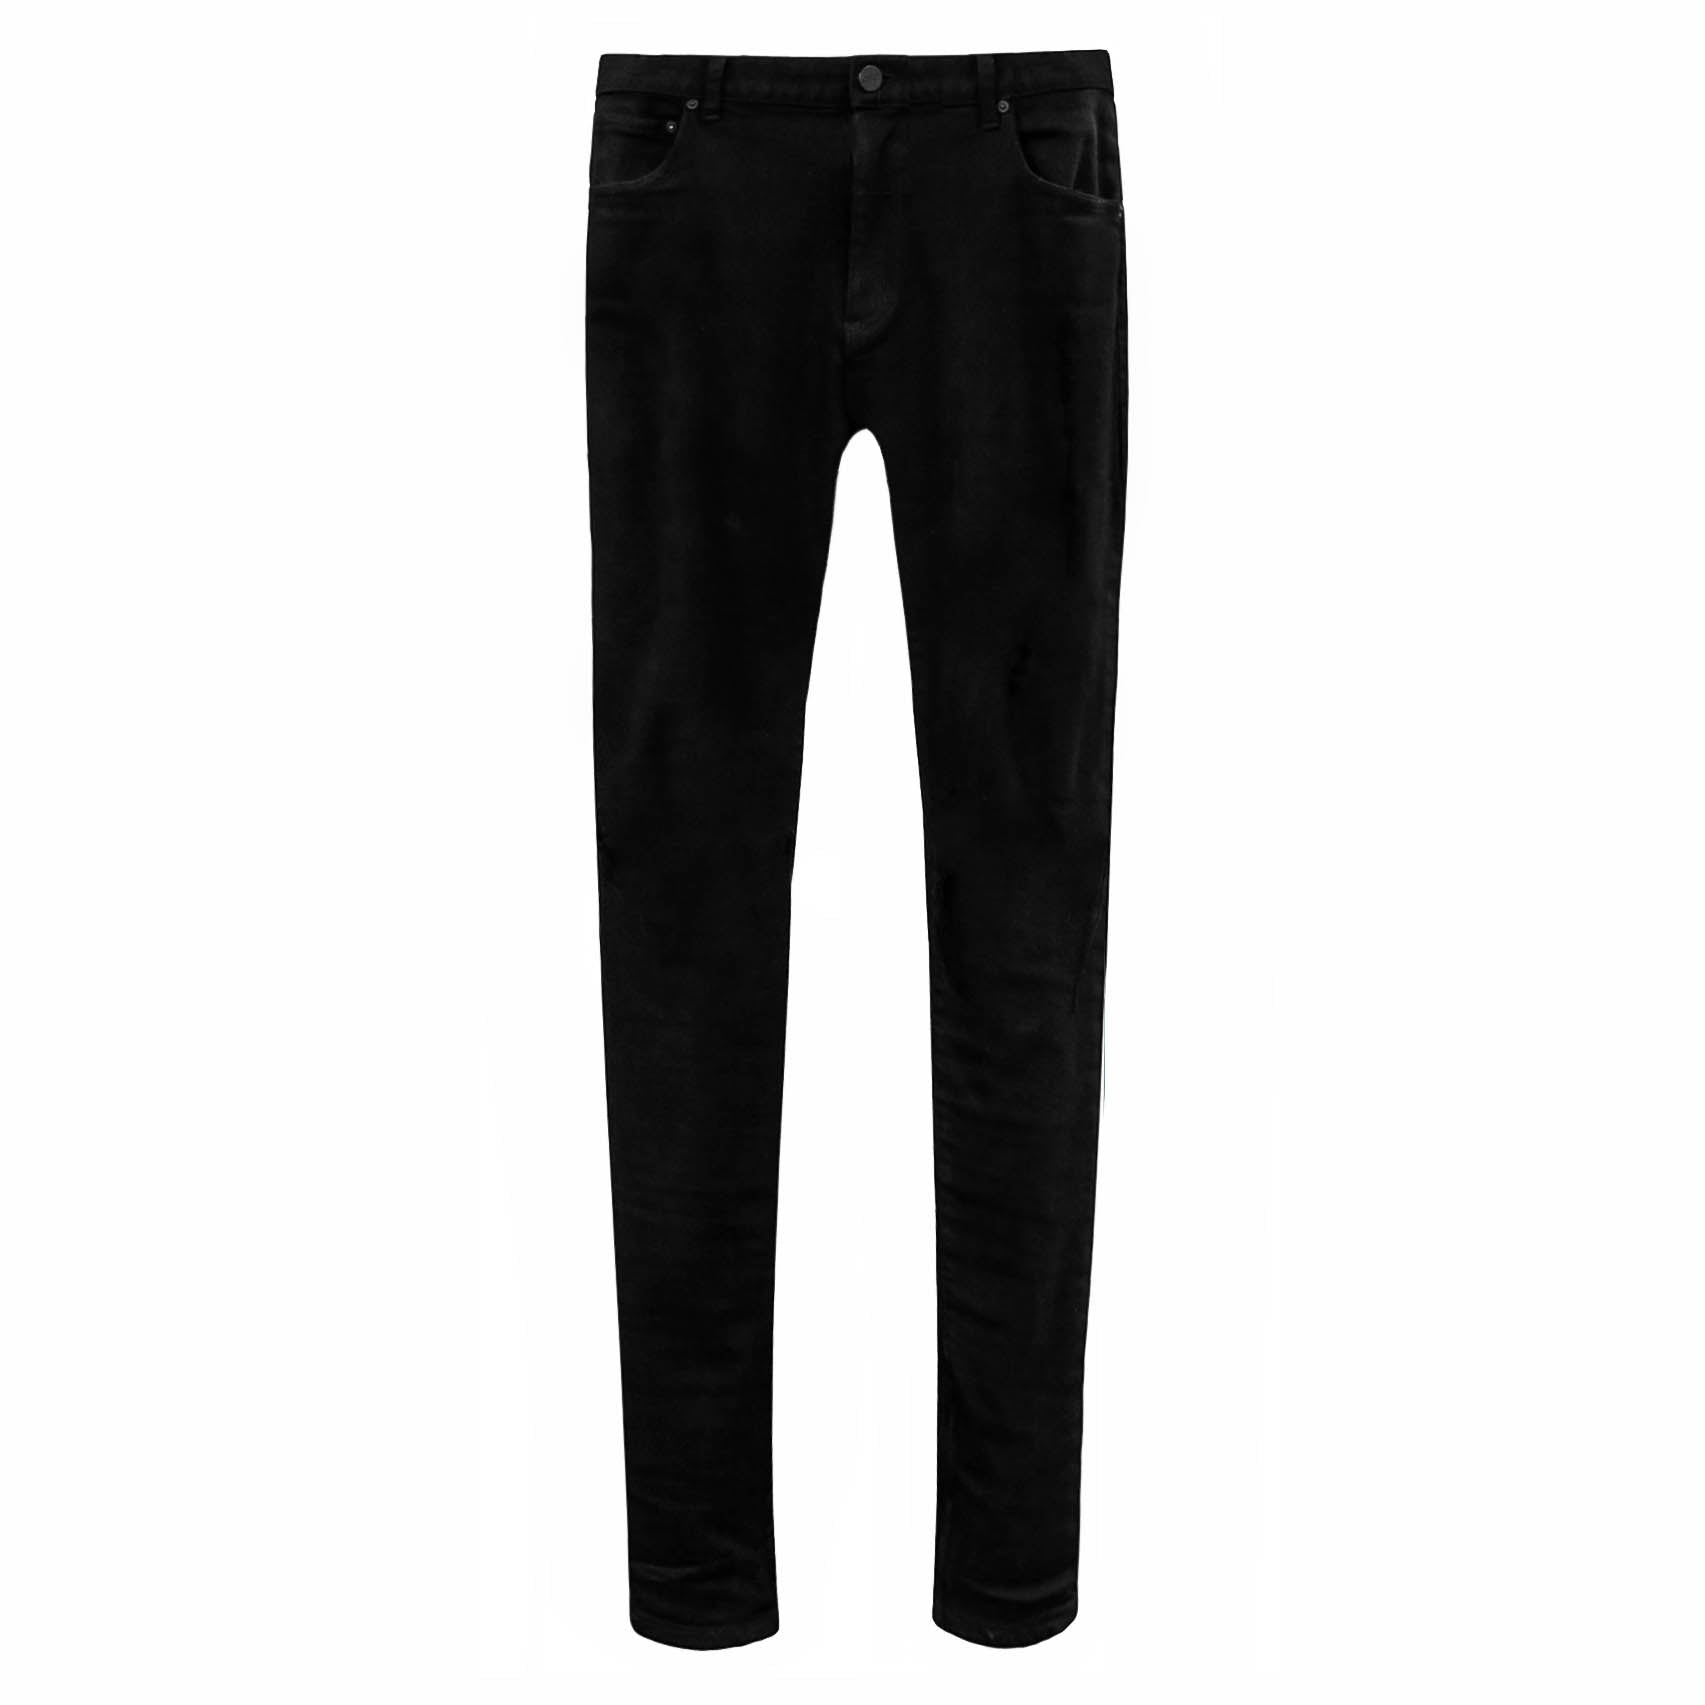 THE ISTAN BLACK DENIM